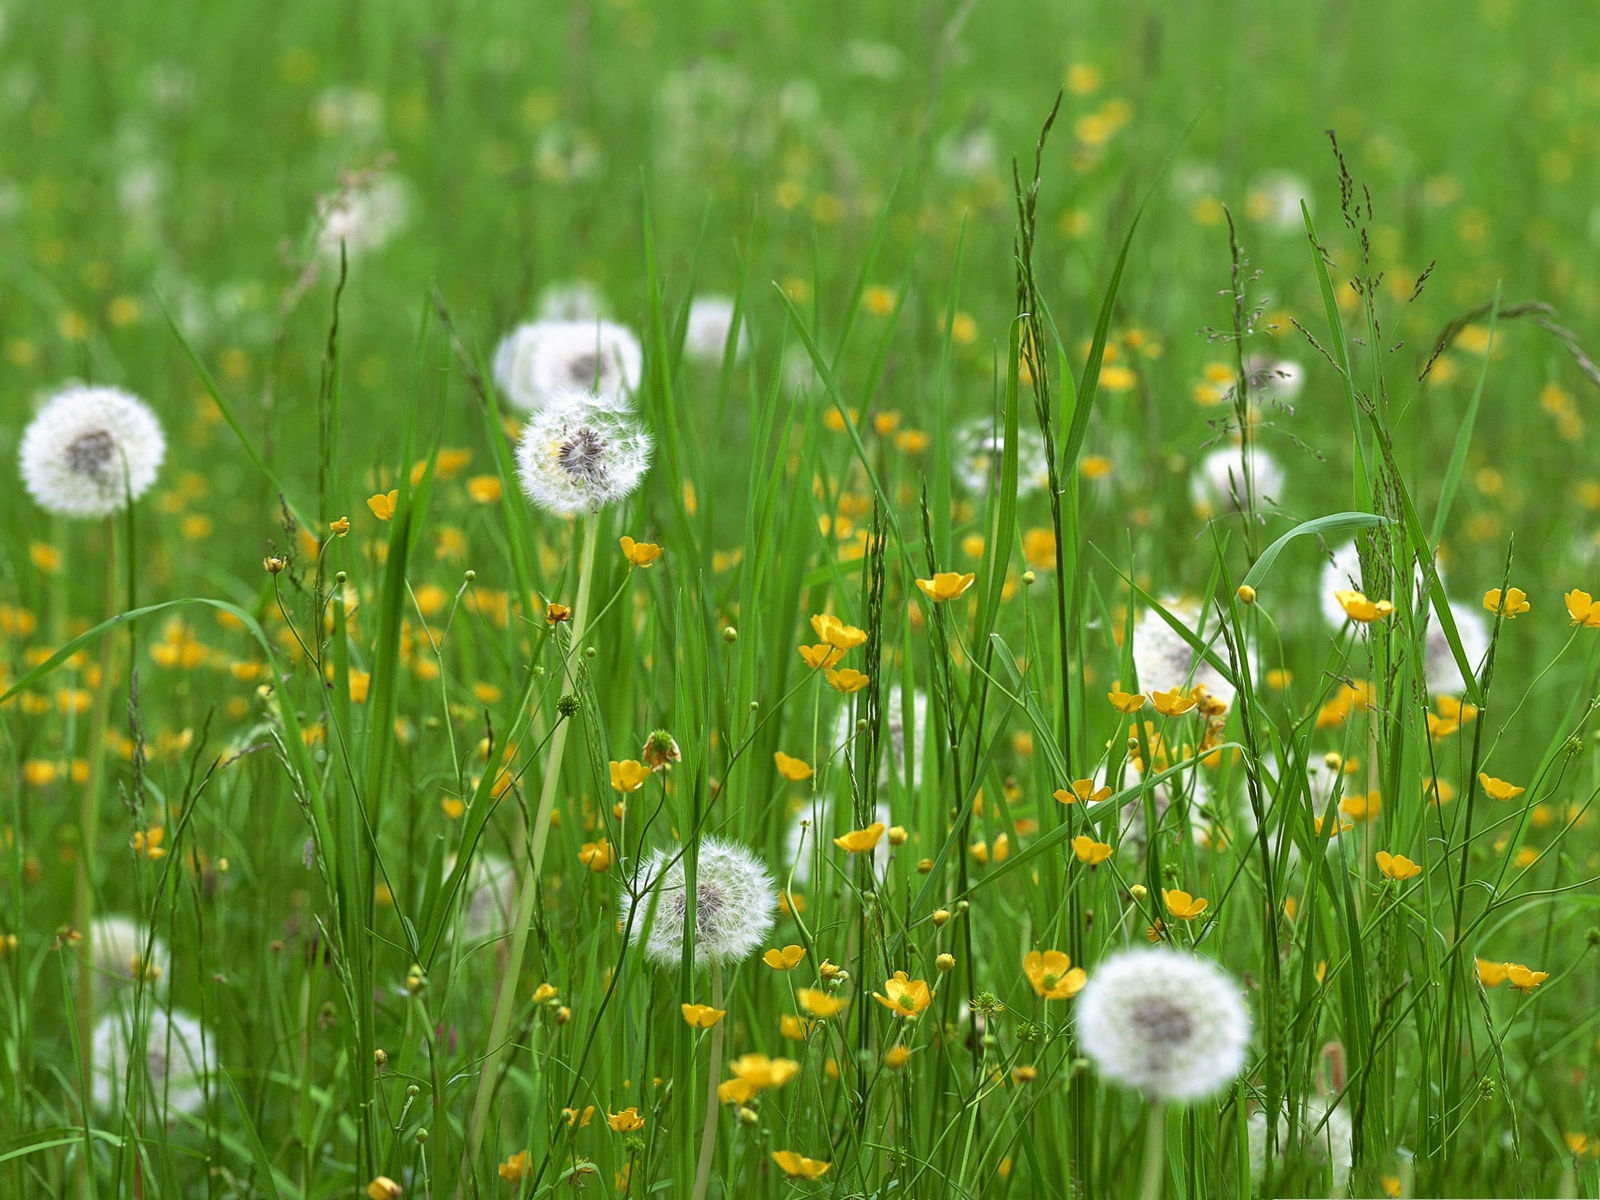 click to free download the wallpaper--Dandelion Flower Images, White Flowers and Green Grass, Spring Flowers Field 1600X1200 free wallpaper download